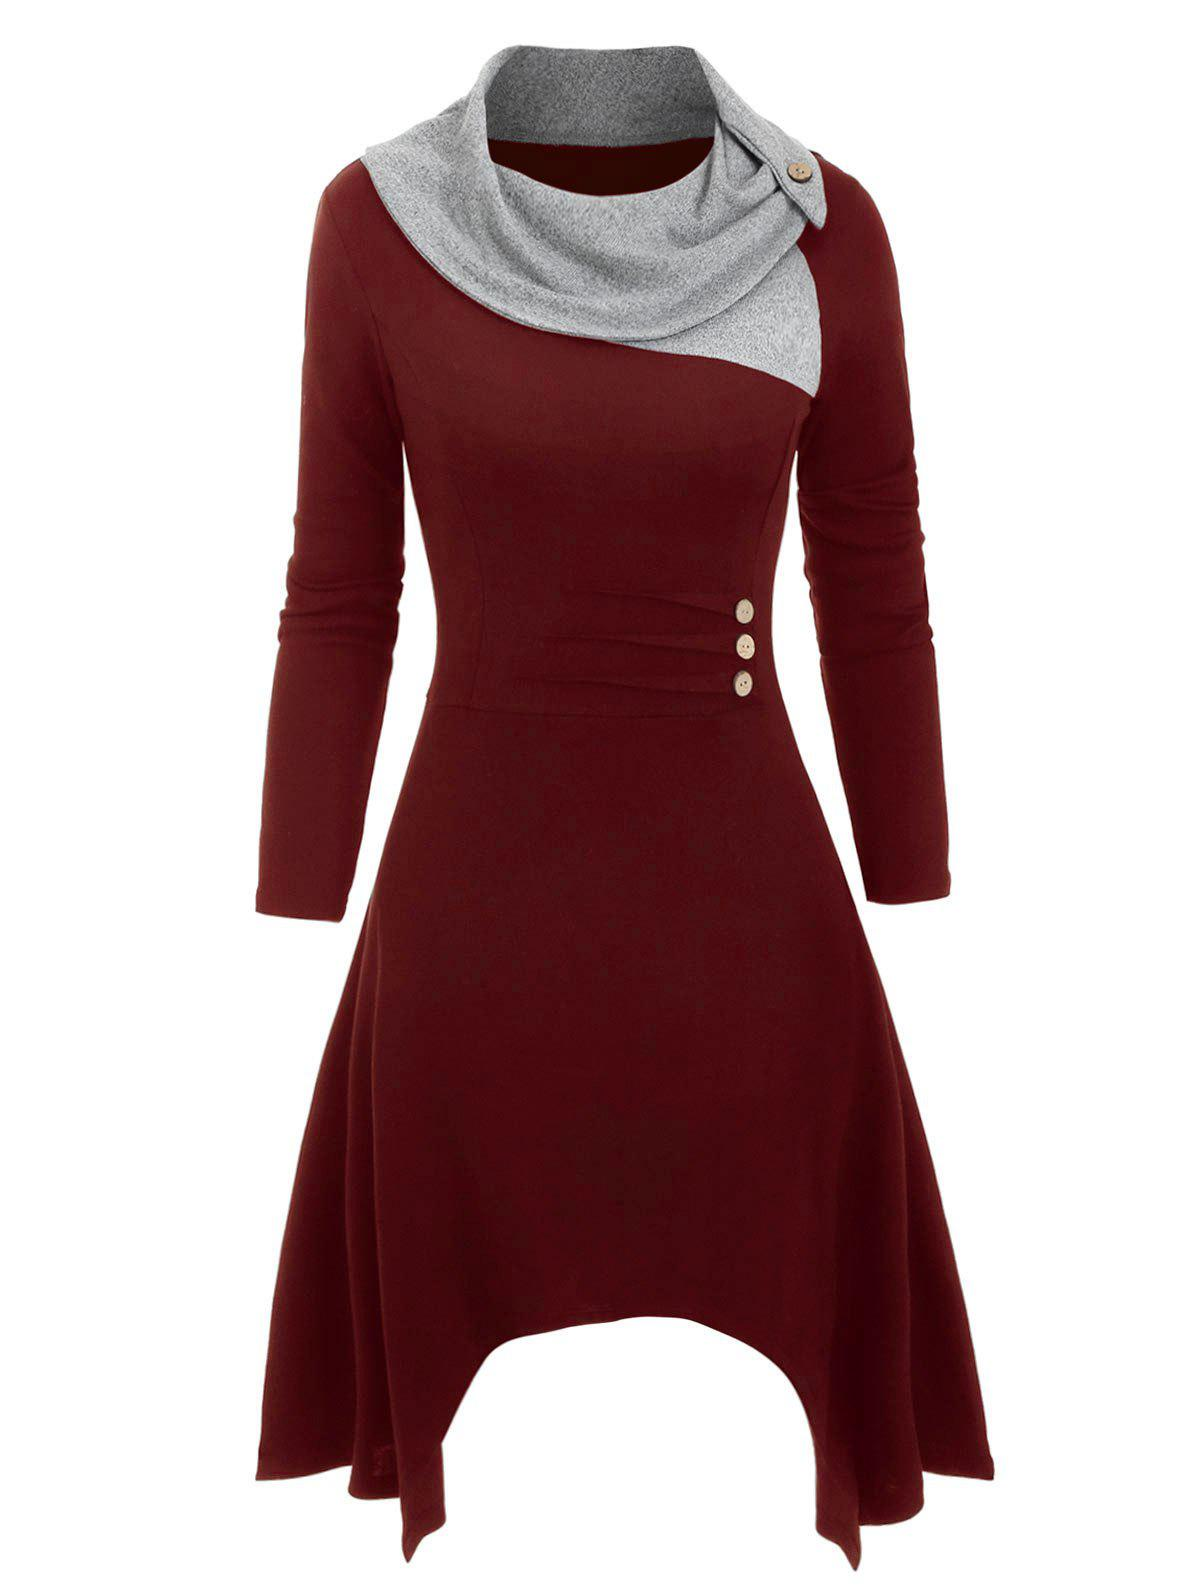 Cowl Neck Button Embellished Asymmetrical Knitted Dress - RED WINE 3XL